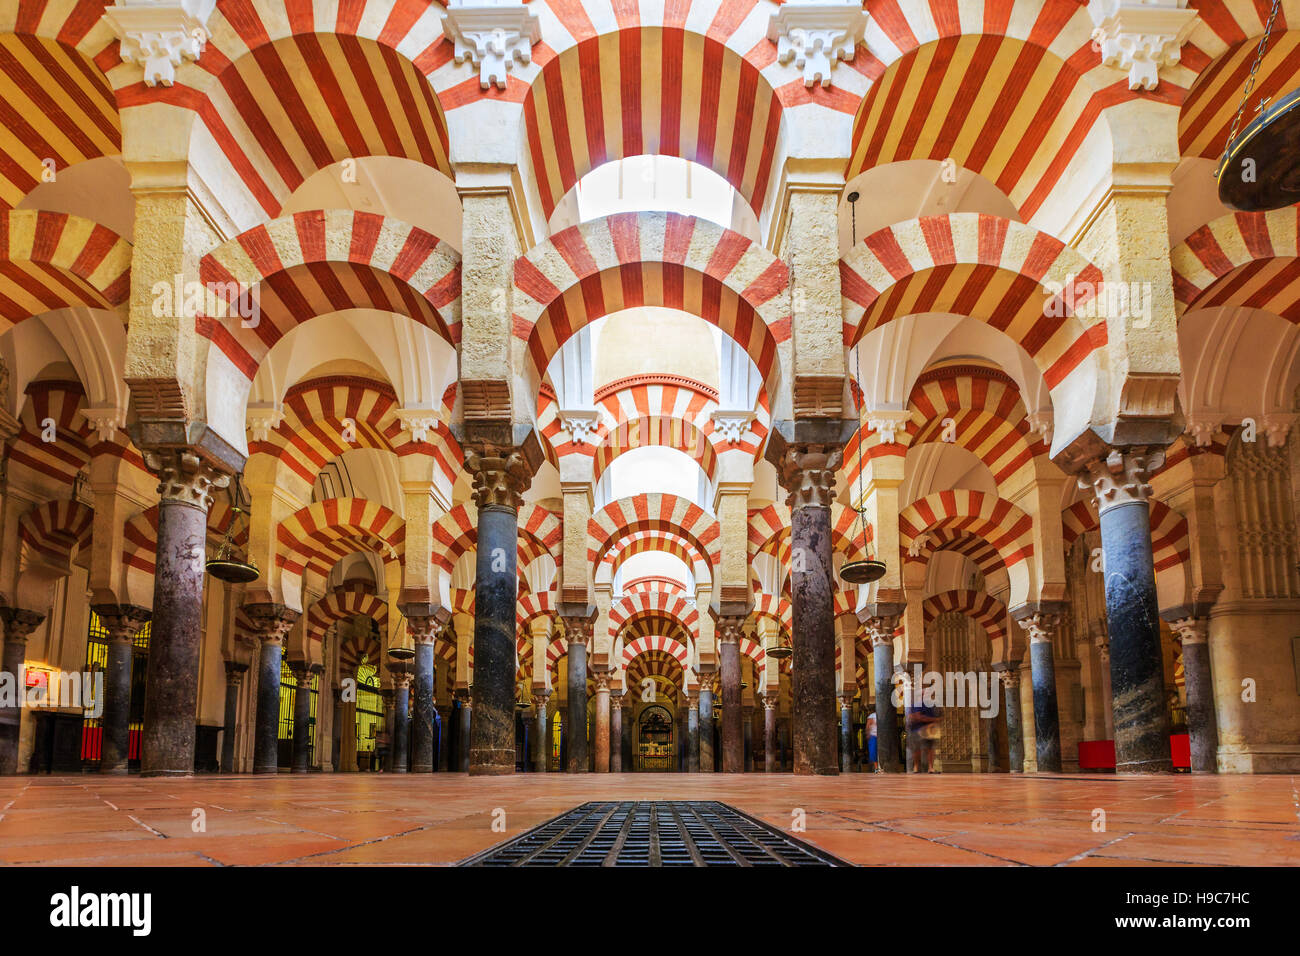 Cordoba spain interior view of la mezquita cathedral for Mezquita de cordoba interior